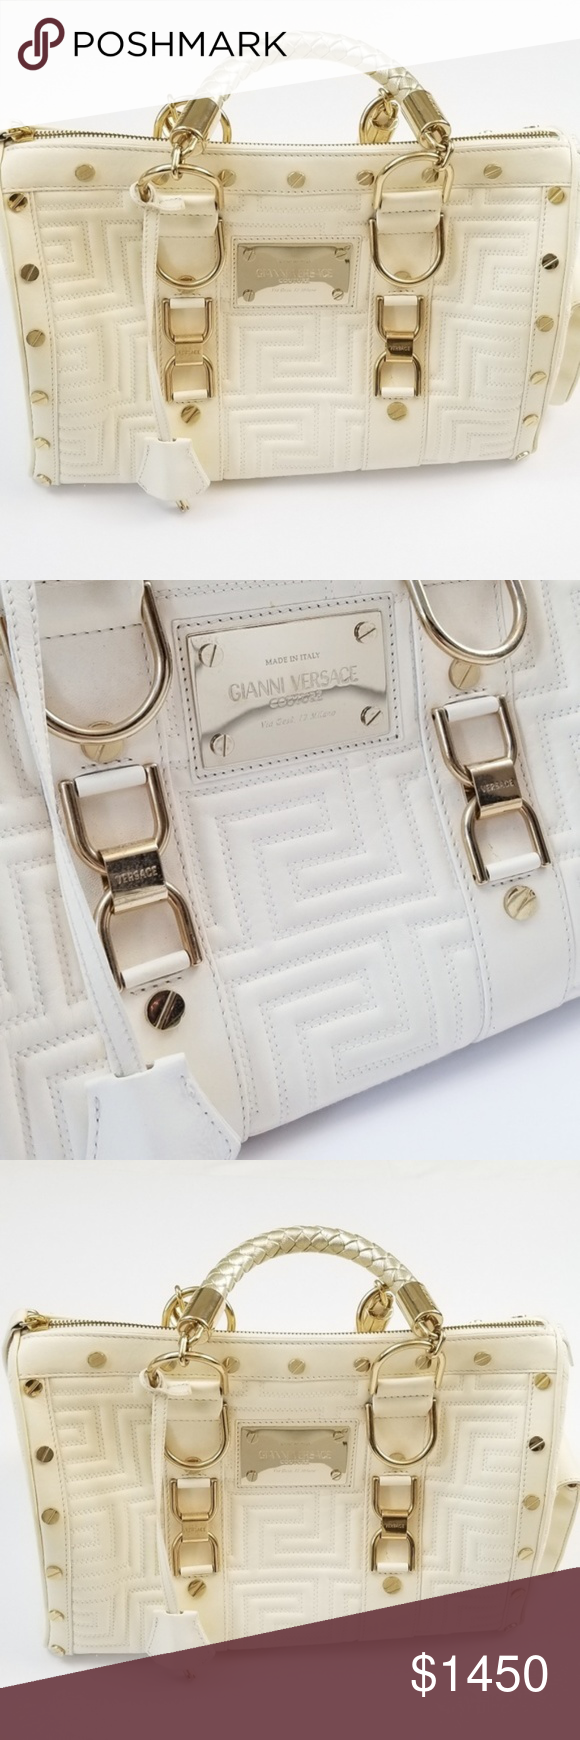 3eb9568b774 Versace Couture Designer Quilted Cream Bag Gianni Versace Couture Designer  Quilted Cream Bag - Snap Out